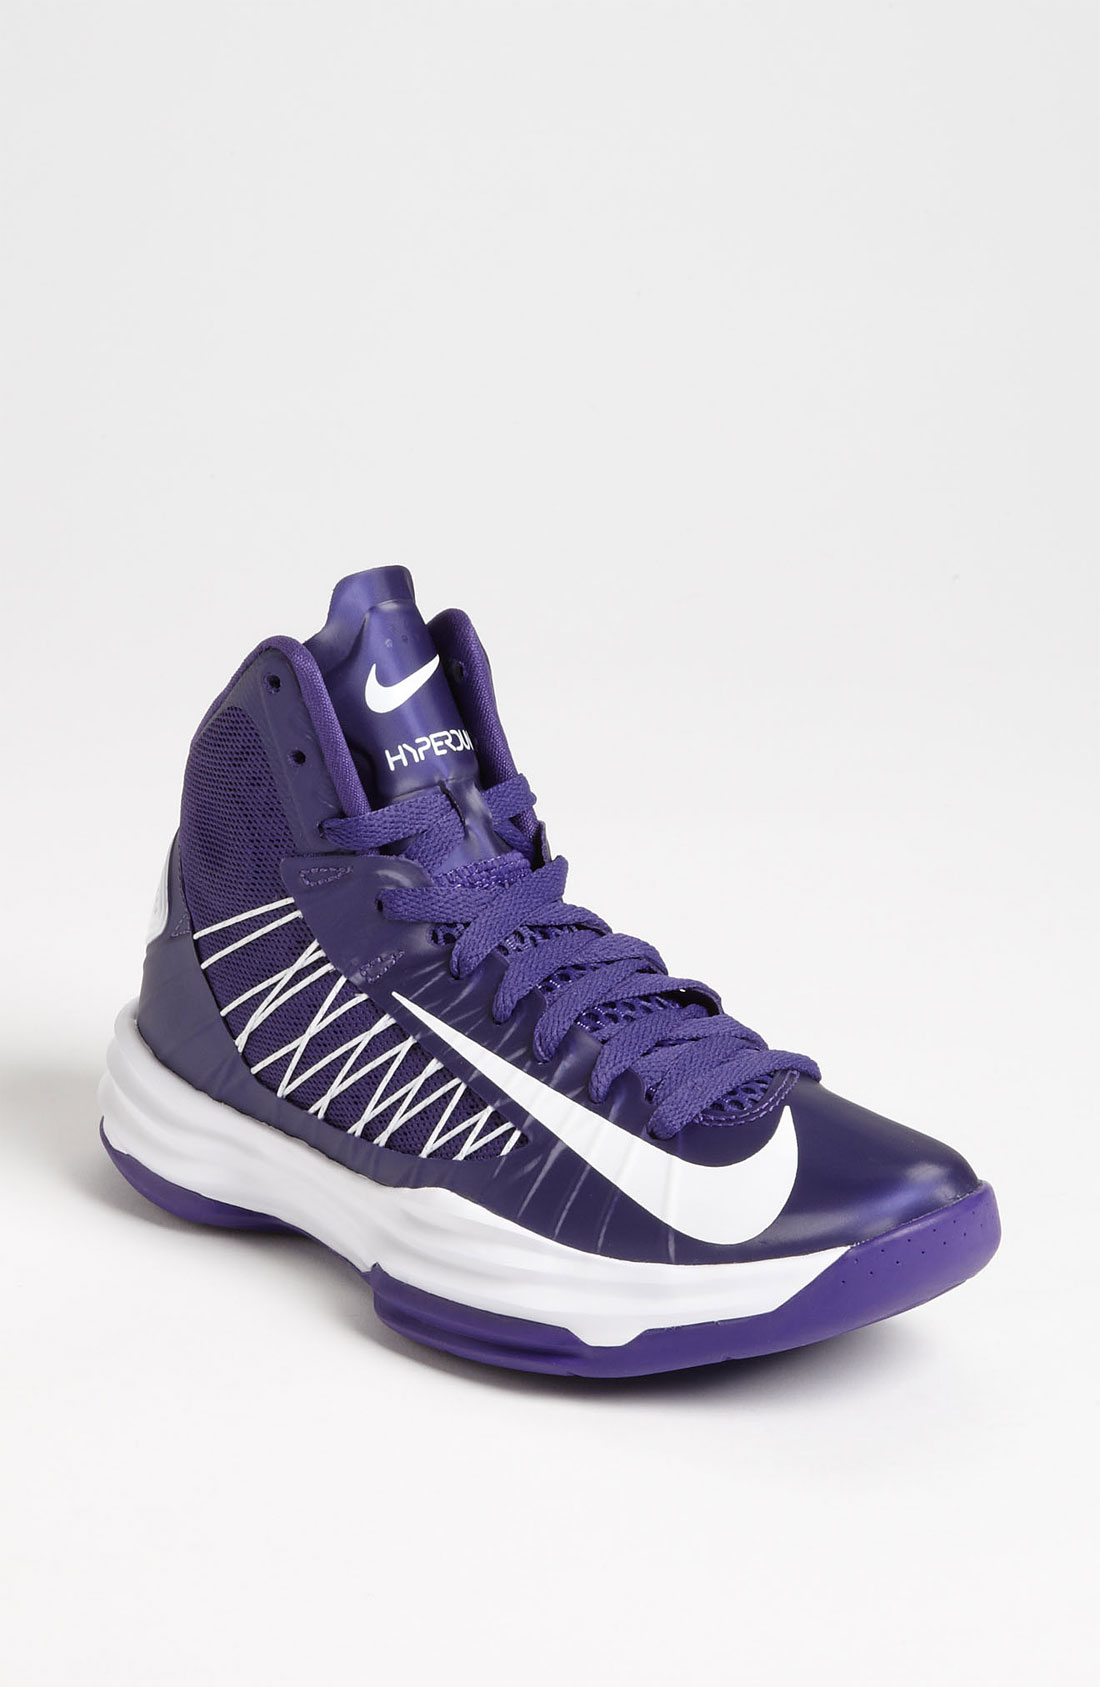 Nike Lunar Hyperdunk Basketball Shoe in Purple (court ...